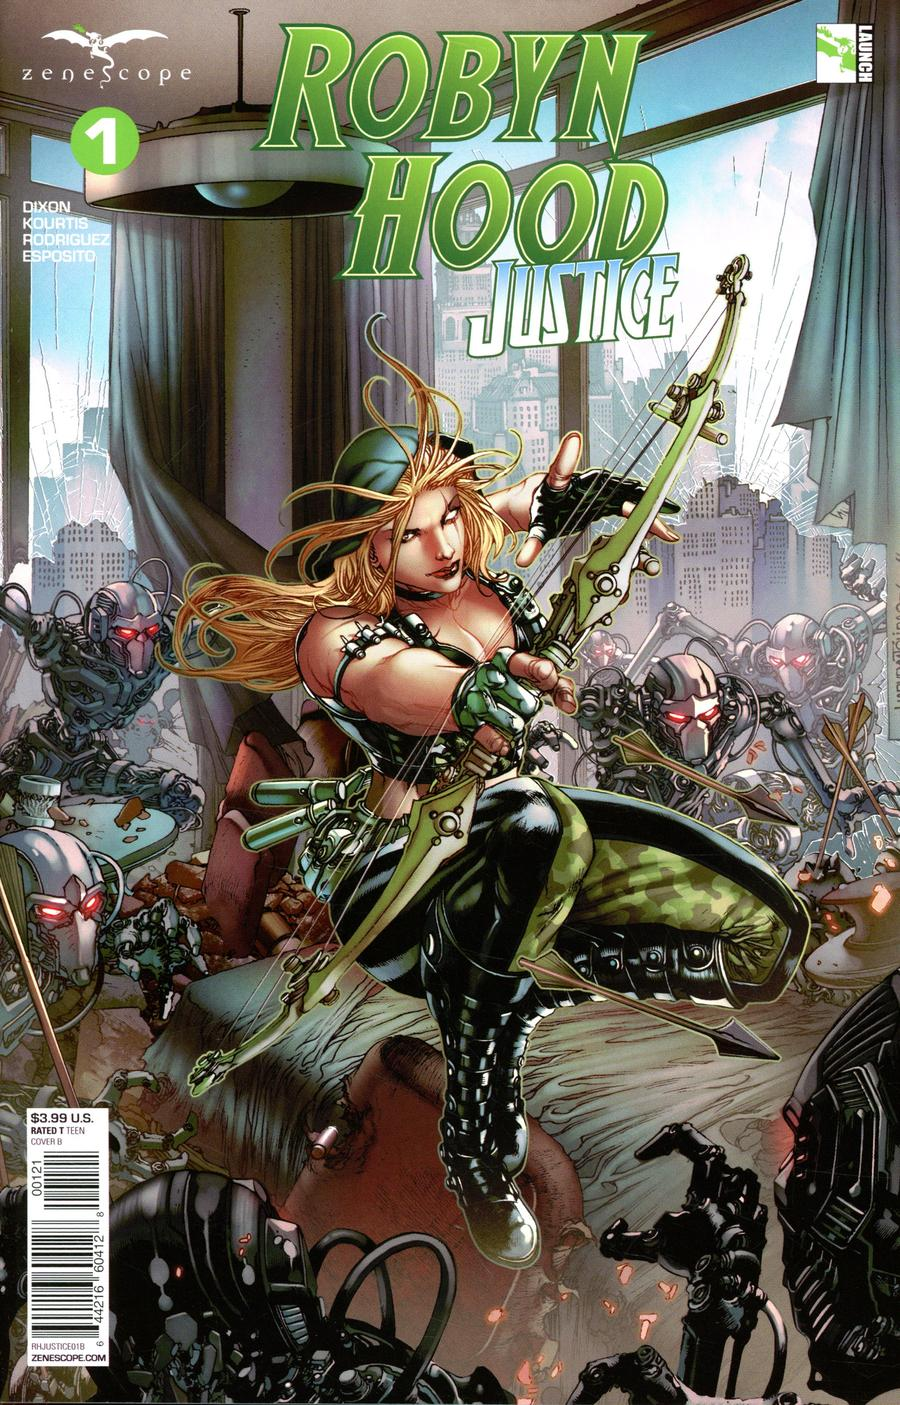 Grimm Fairy Tales Presents Robyn Hood Justice #1 Cover B Harvey Tolibao